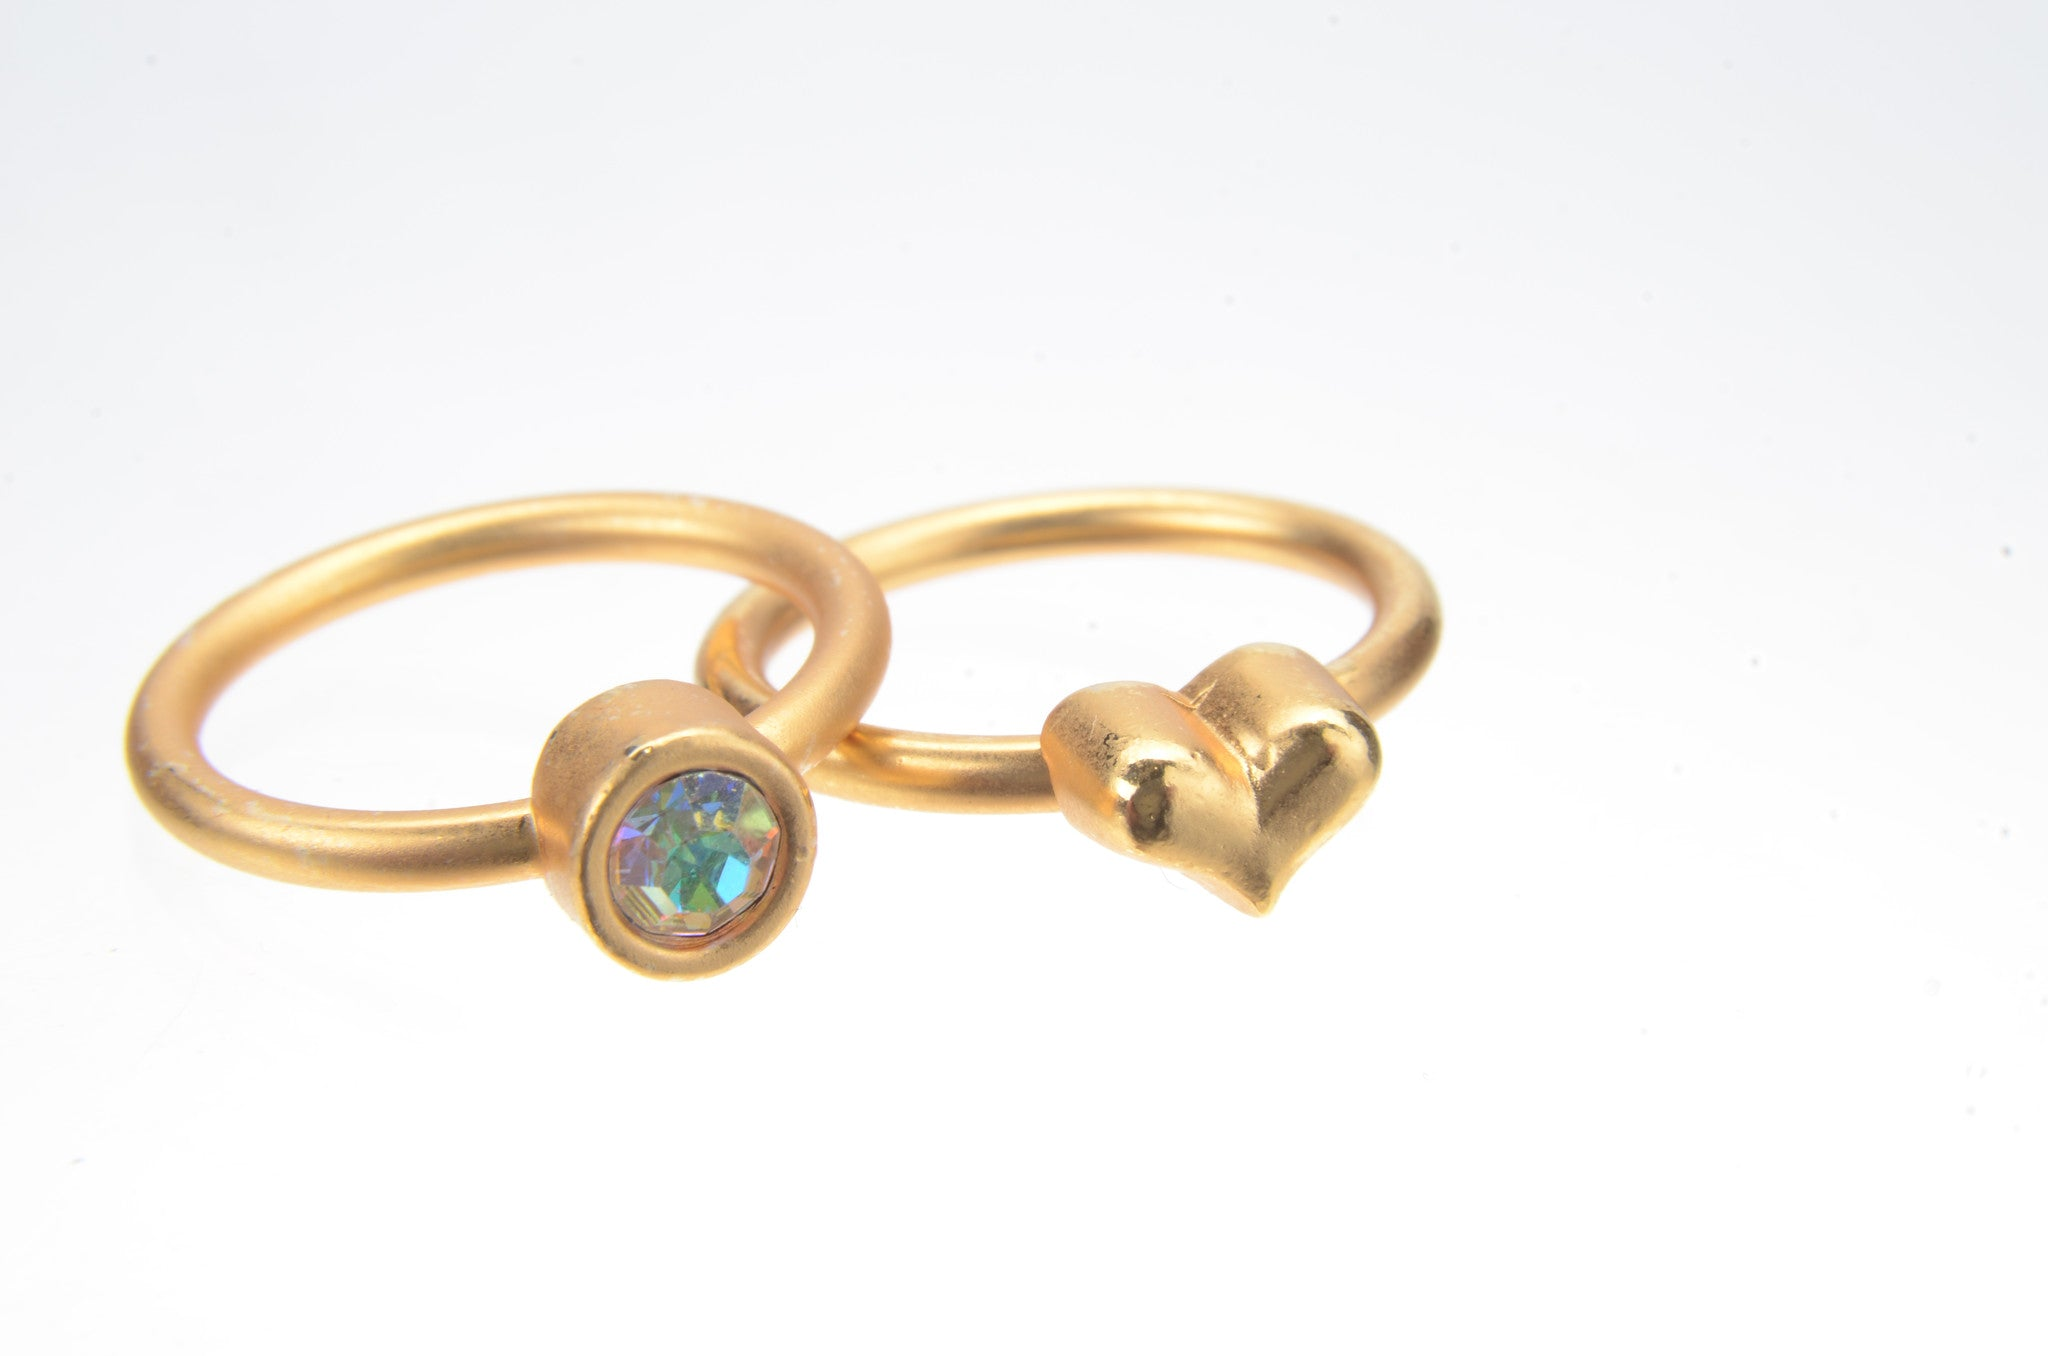 October Opal Birthstone Ring Set - Whitney Howard Designs